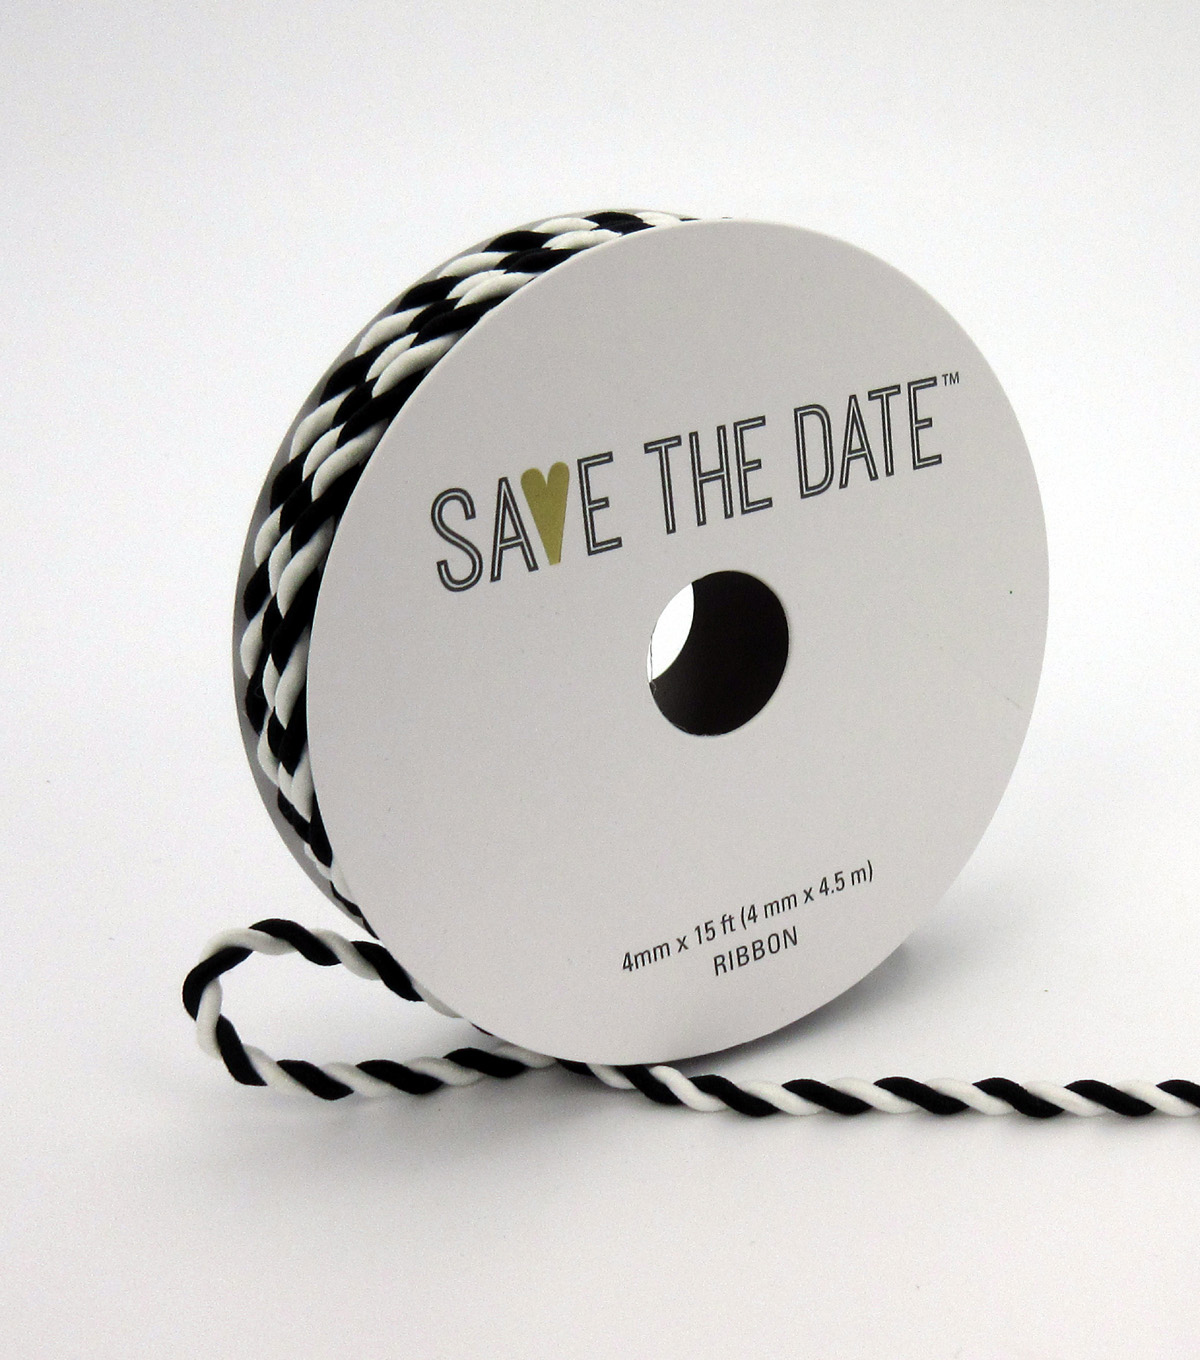 Save the Date 4mm x 15ft Cord-Black White Twist